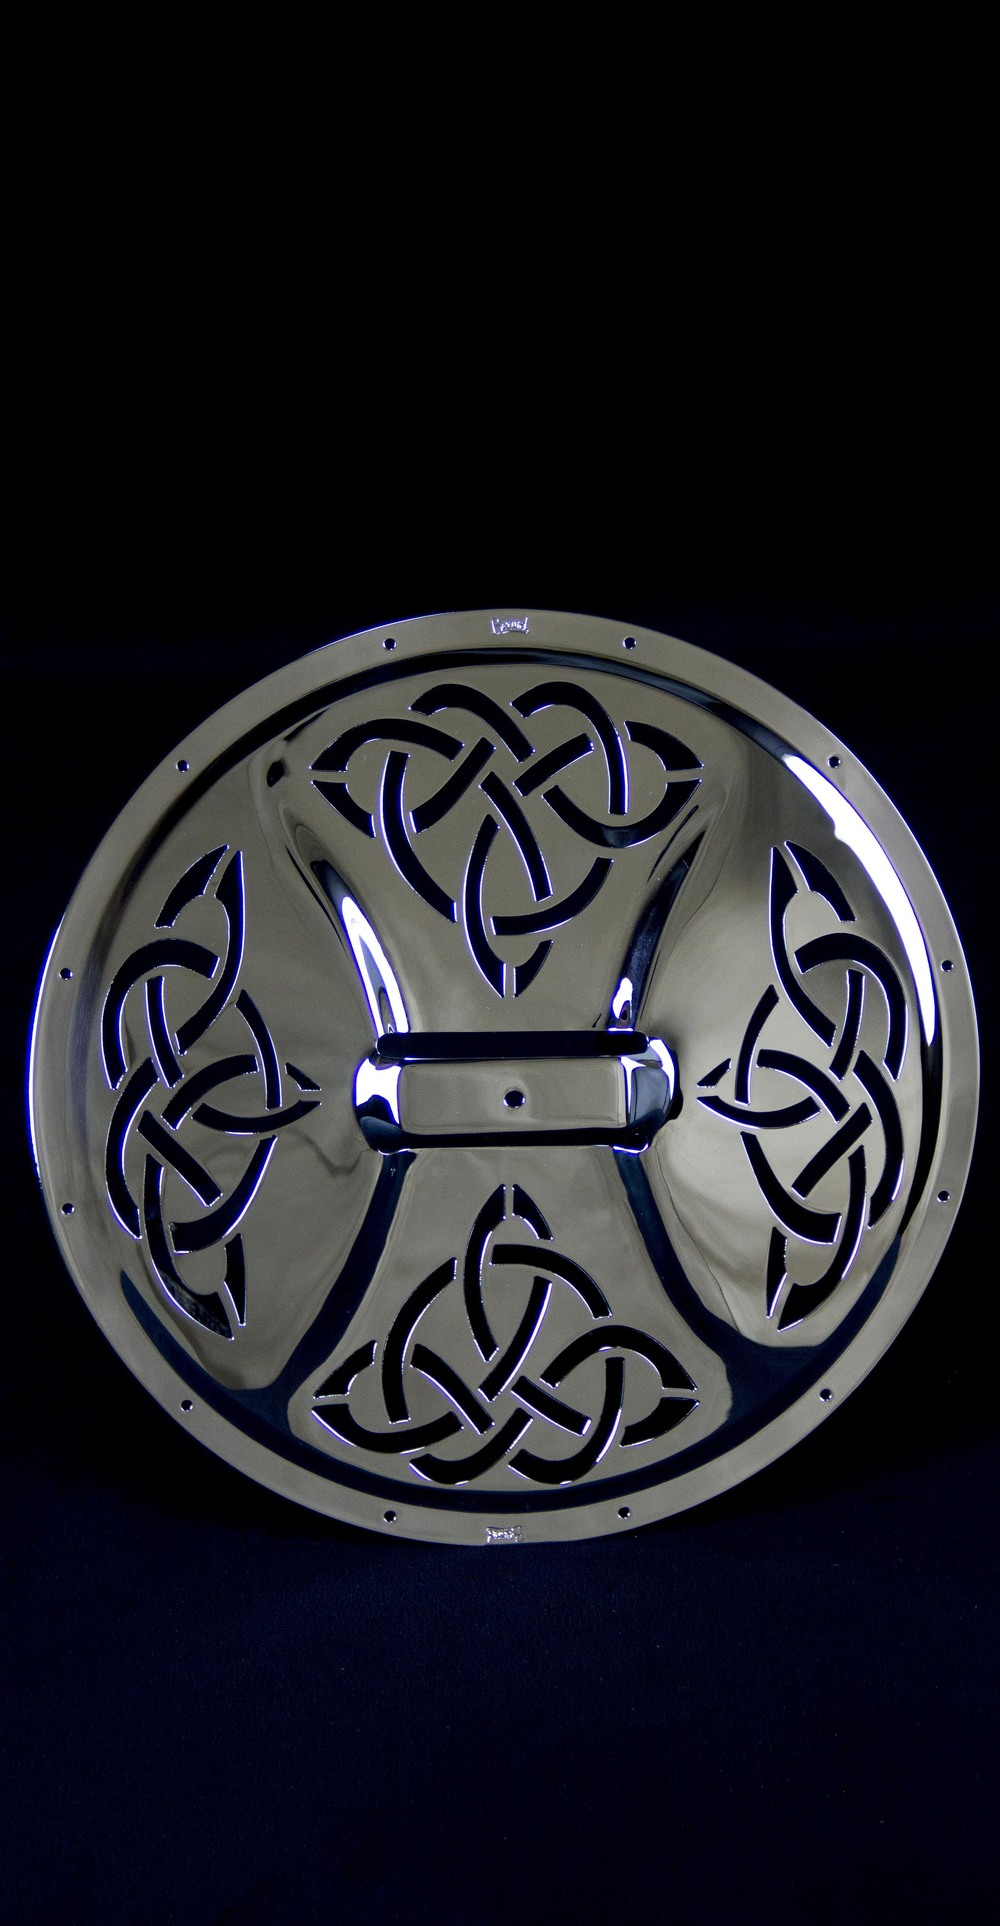 Beard Celtic Knot™ Coverplate (available only on Beard Guitars)